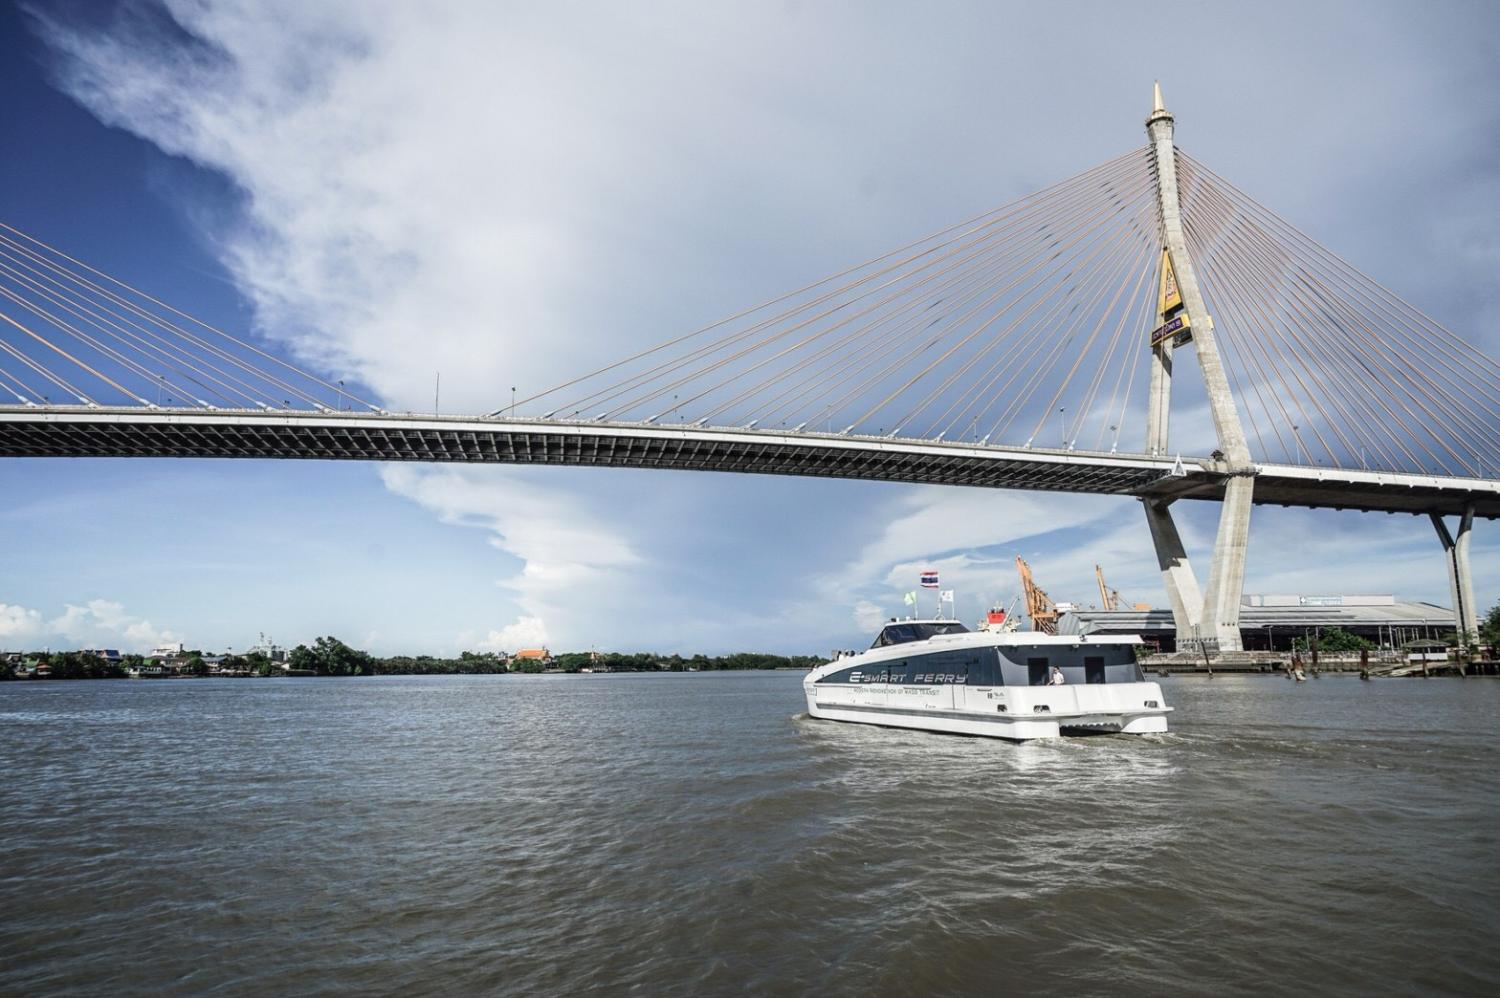 A plug-in electric boat developed by EA is being tested on the Chao Phraya River this year.